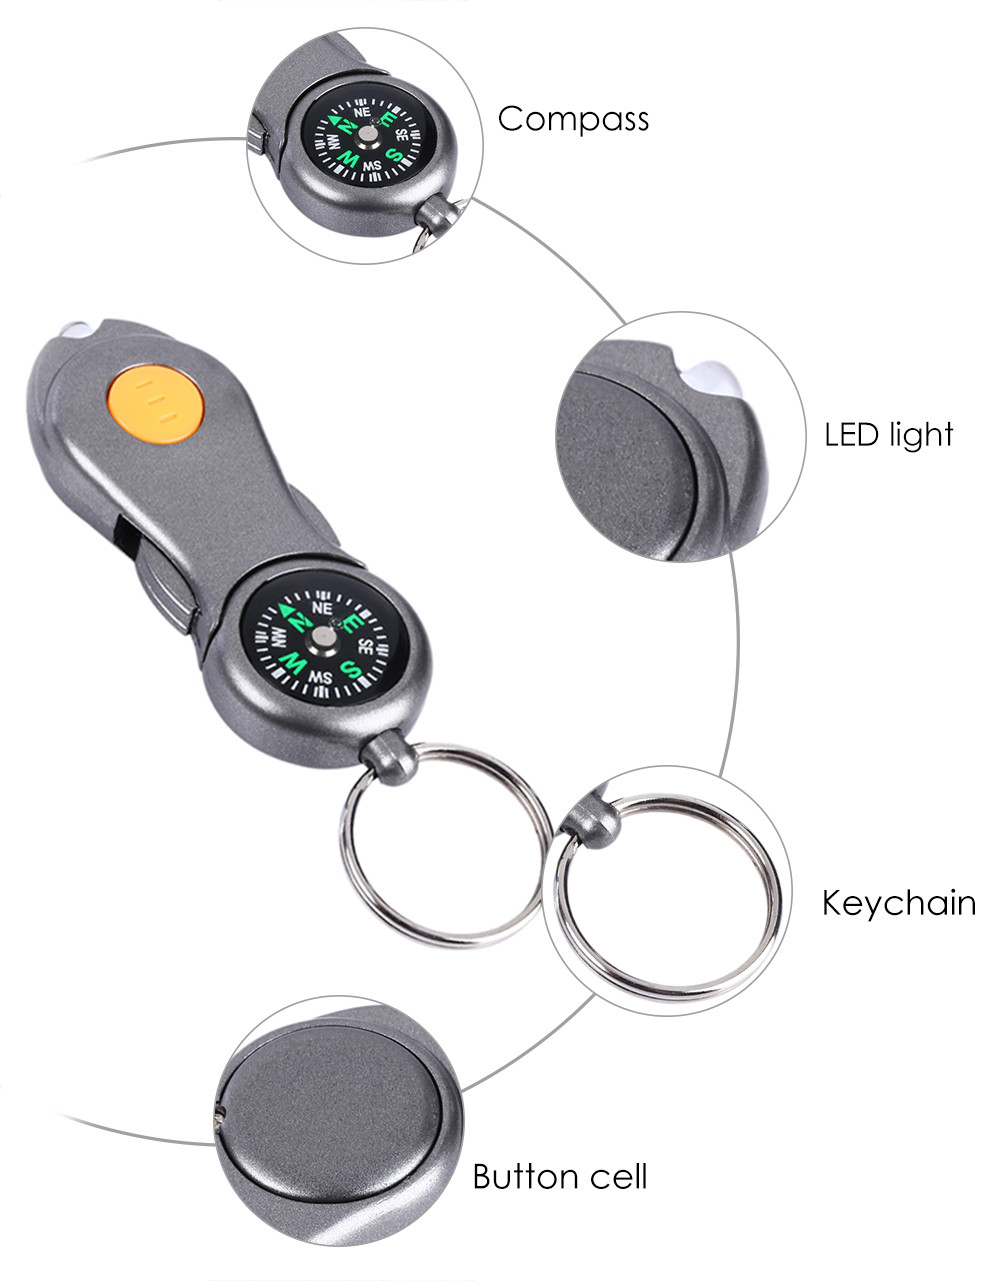 2 in 1 Multifunctional Tool Compass Keychain Keyring LED Light